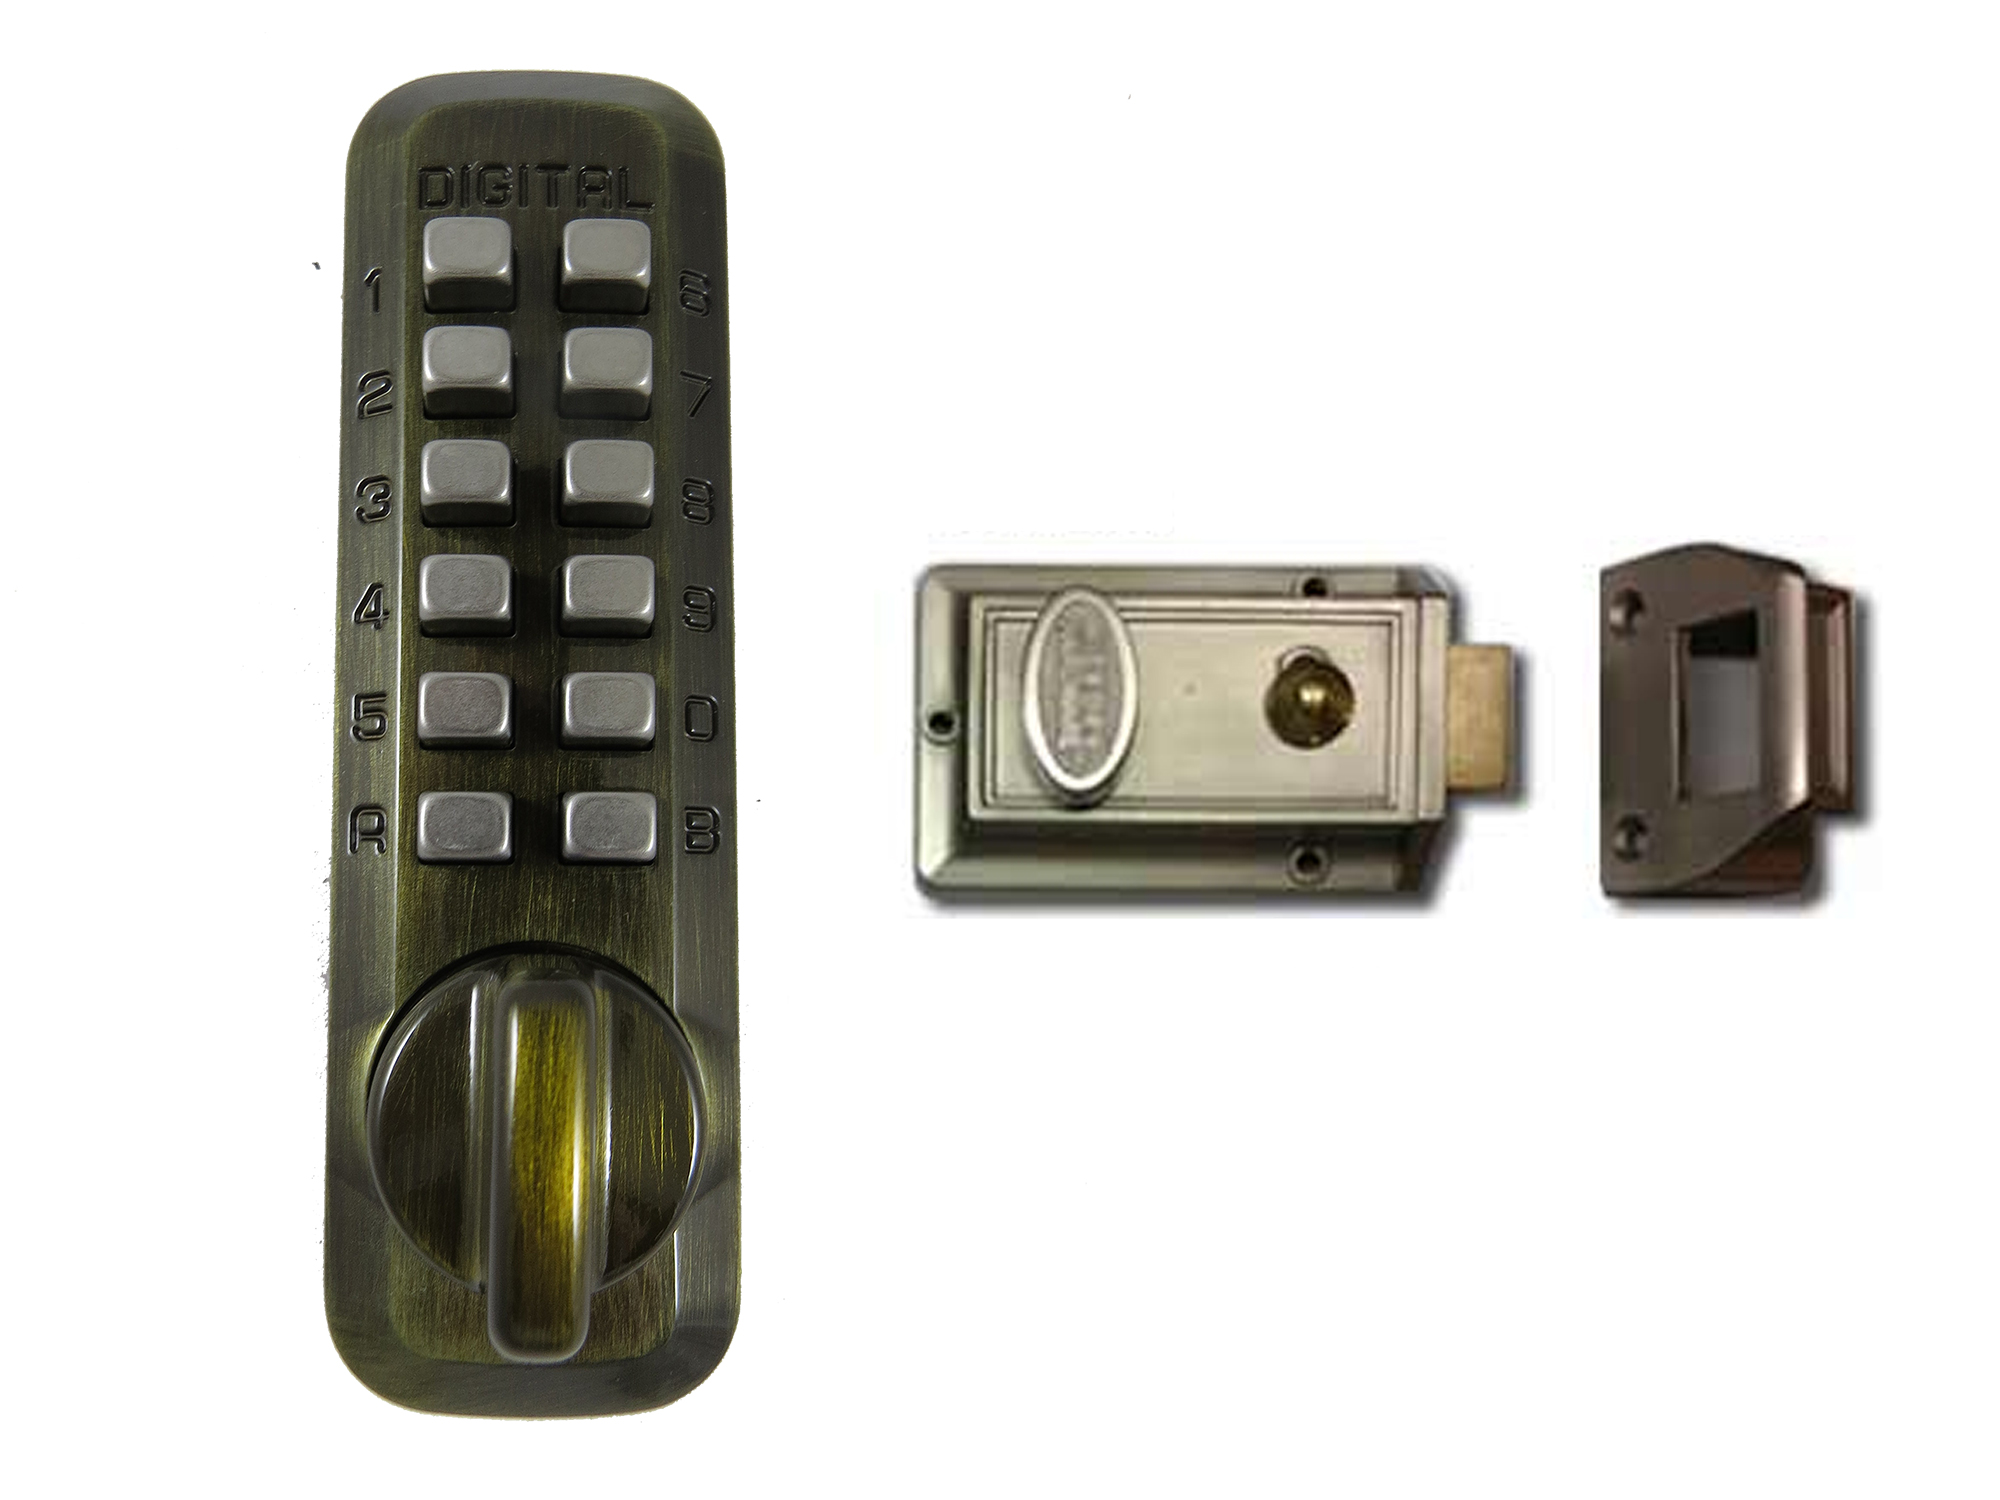 Lockey M213 Home Security Nite-Latch Keypad Lock